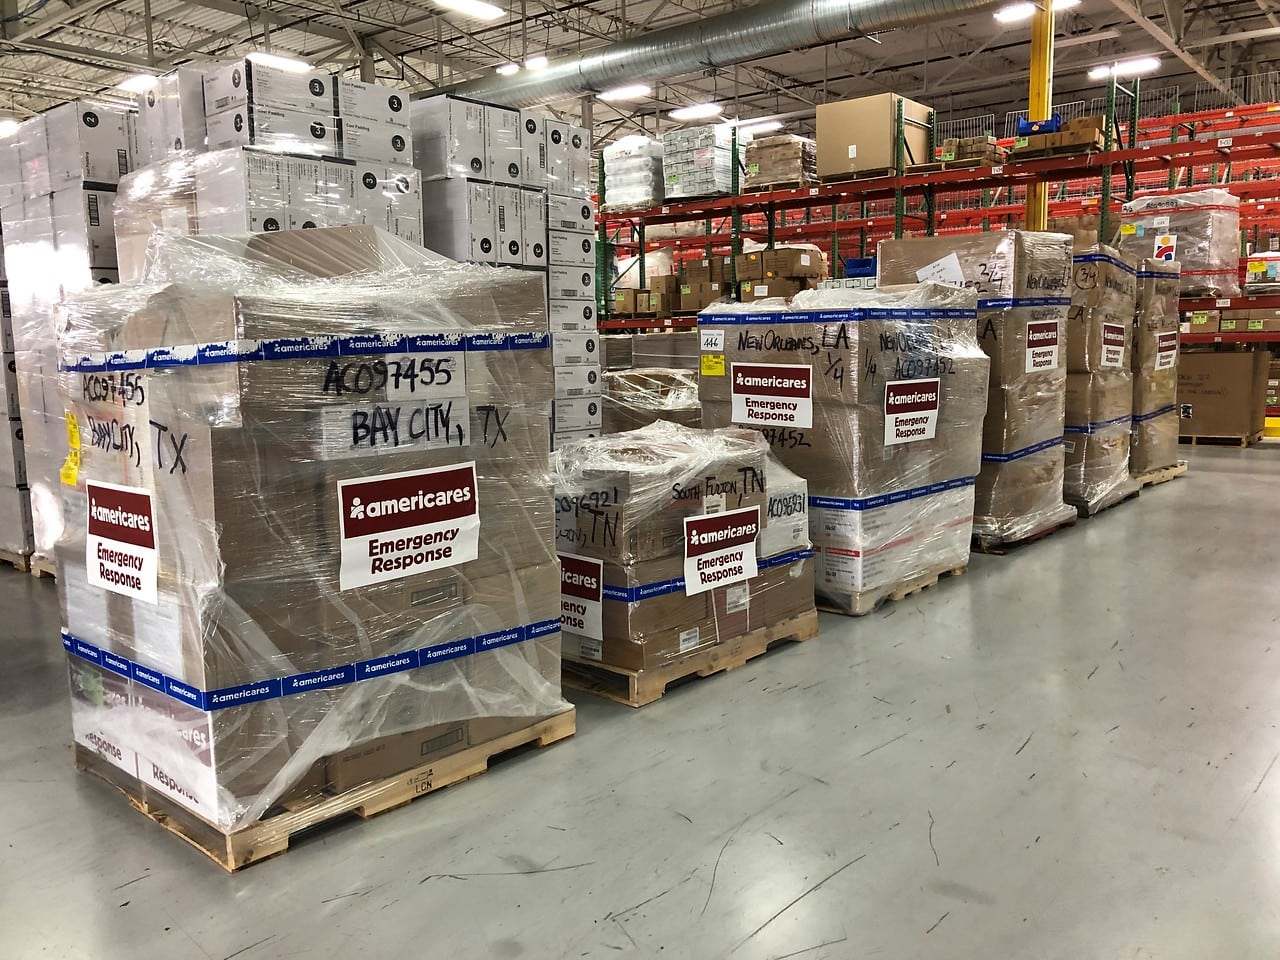 2 tons of supplies in distribution center ready for COVID response